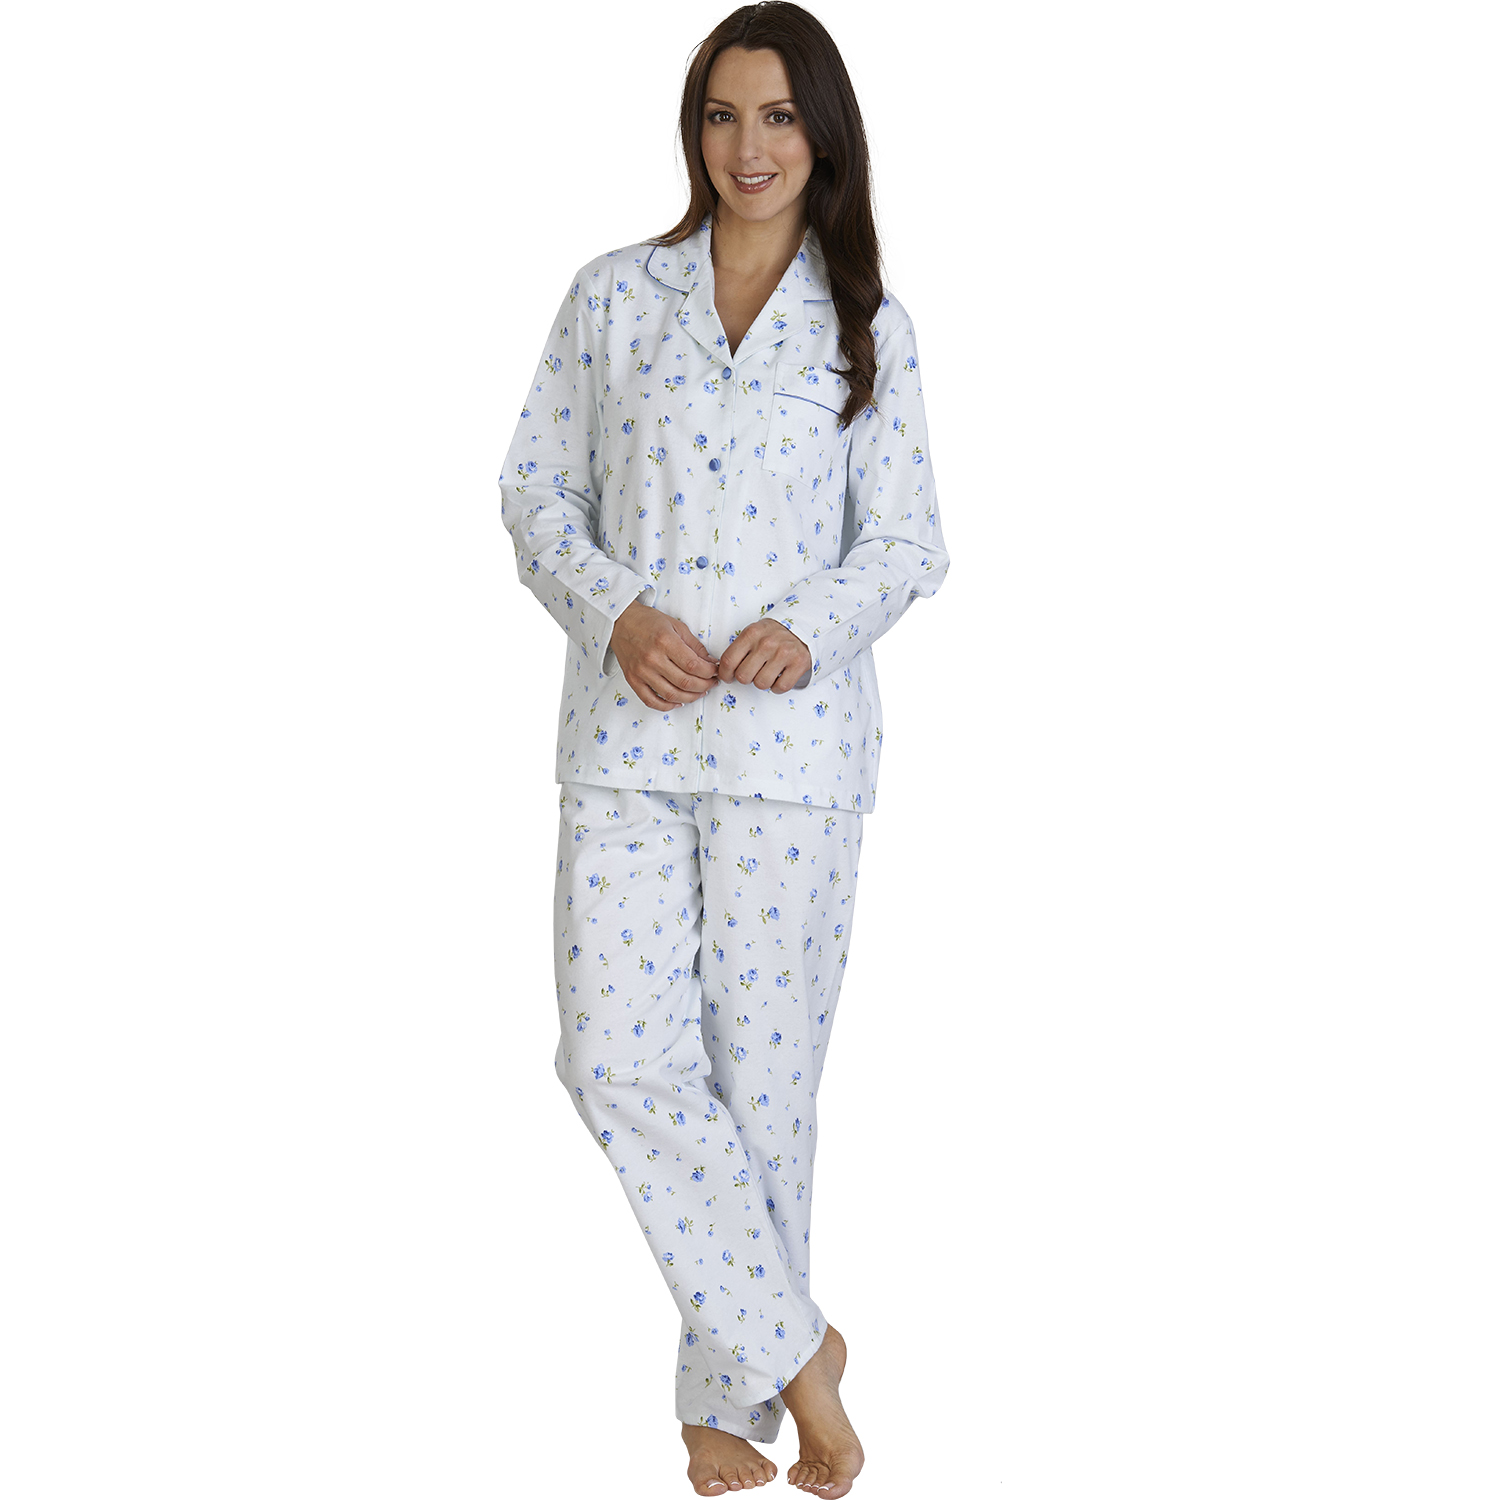 b42c9c85ed Womens Slenderella Flower Design PJs 100% Brushed Cotton Long Sleeved  Pyjamas